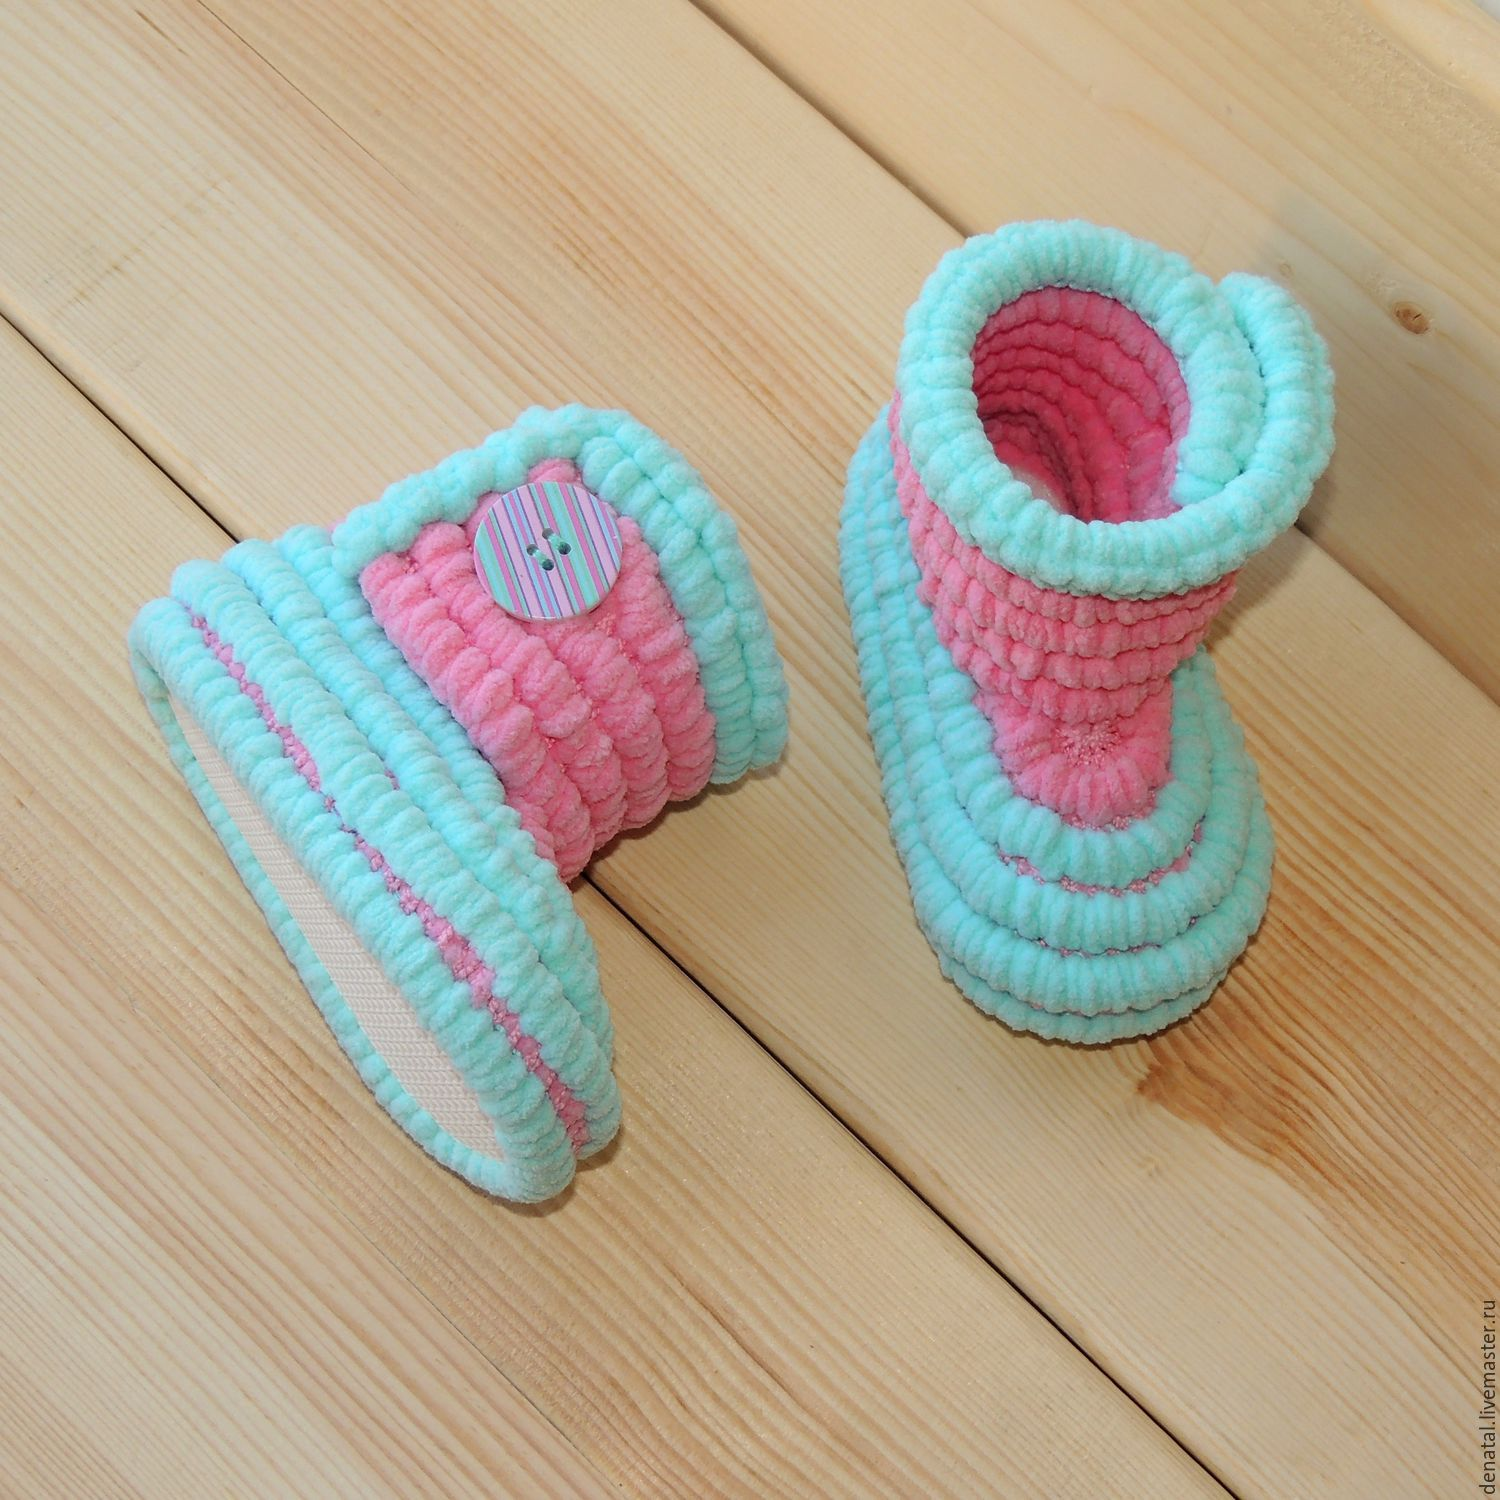 Shop Dental is knitted shoes handmade - plush booties boots for girls. Color booties pink with light turquoise. Booties knitted on the sole evaplast. Author Natalia Derin